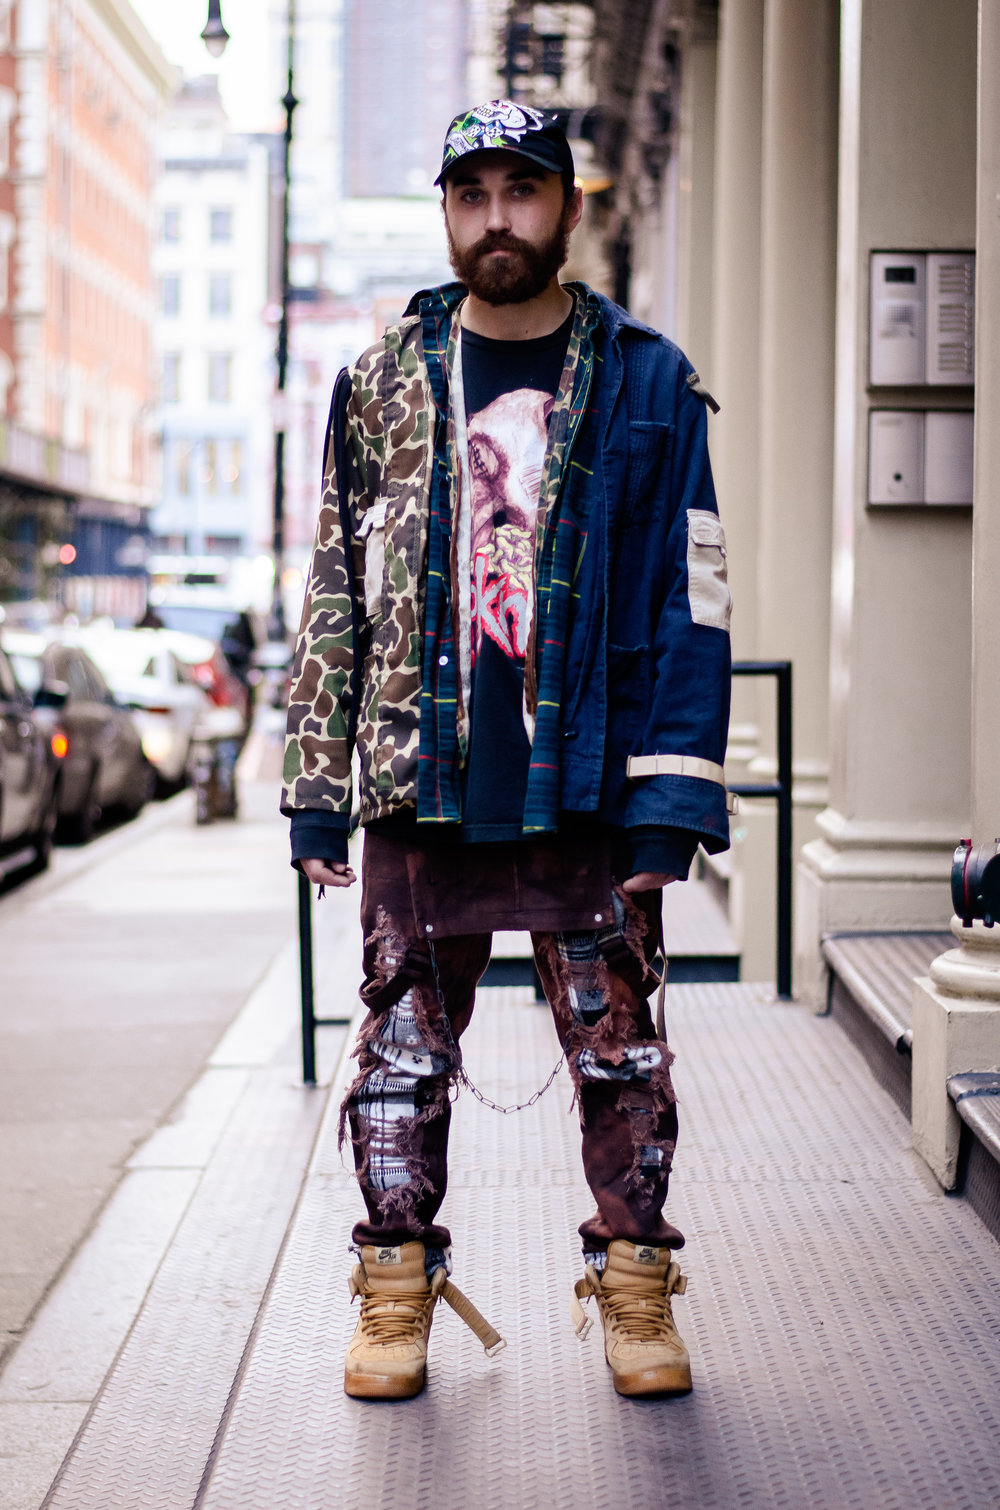 When in doubt, create your own statement pieces, right? Emmett creates his own pieces with clothing found at thrift stores, and flea markets. His jacket is made from camo-print, plaid, and chambray fabrics. Moreover, he dyed and distressed his overalls. The resulting look can be described as experimental grunge